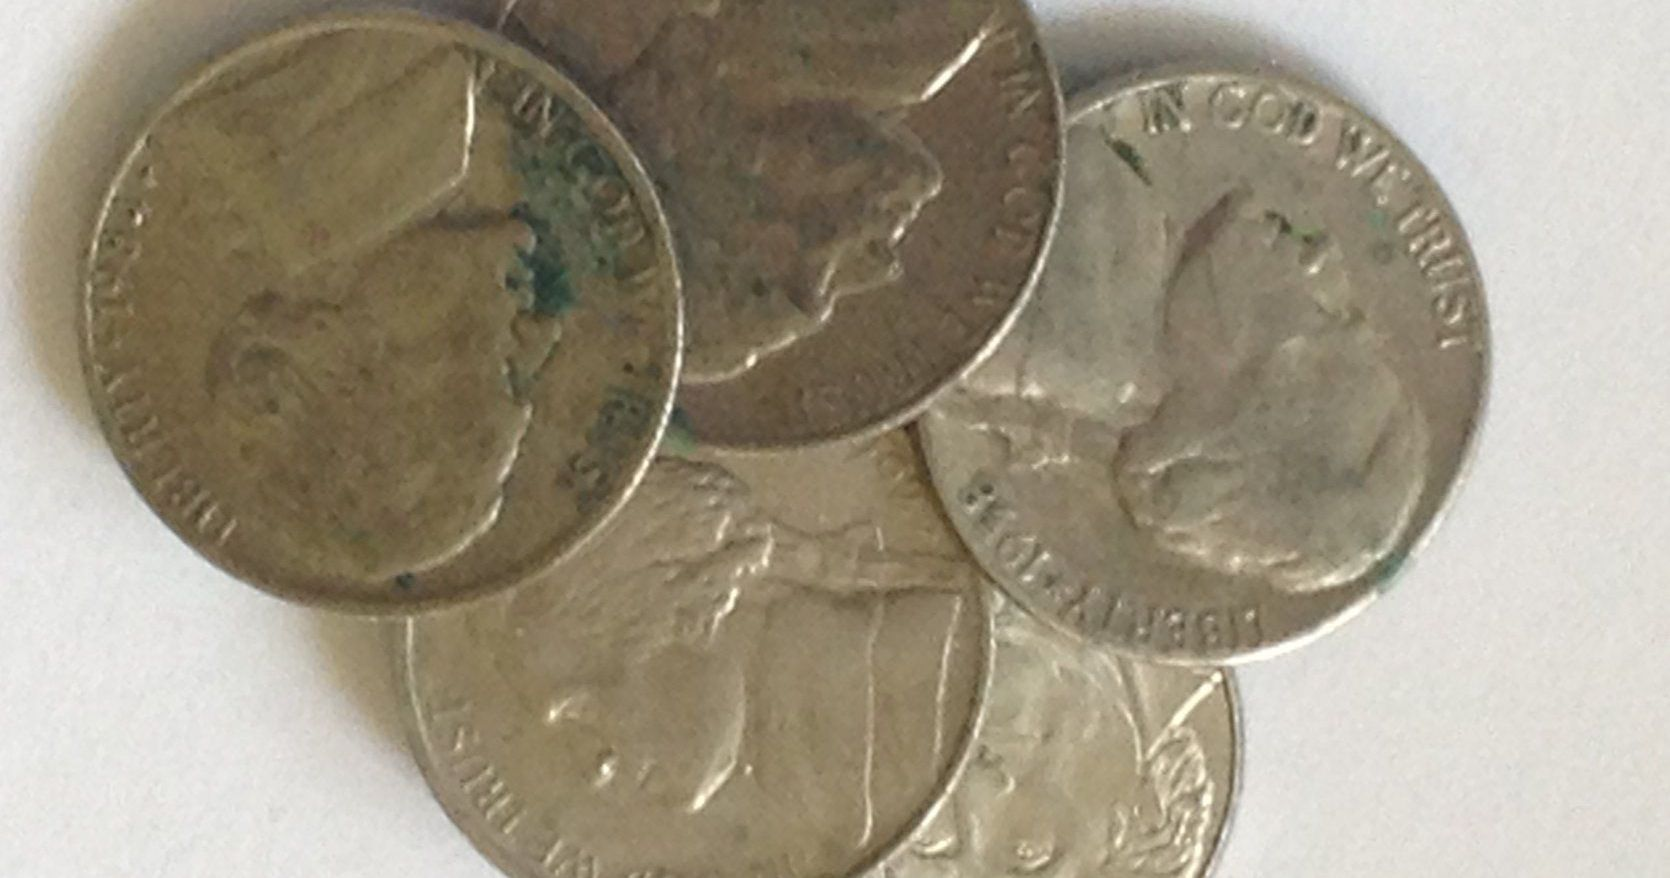 Rare Penny Set To Sell For Millions At Auction